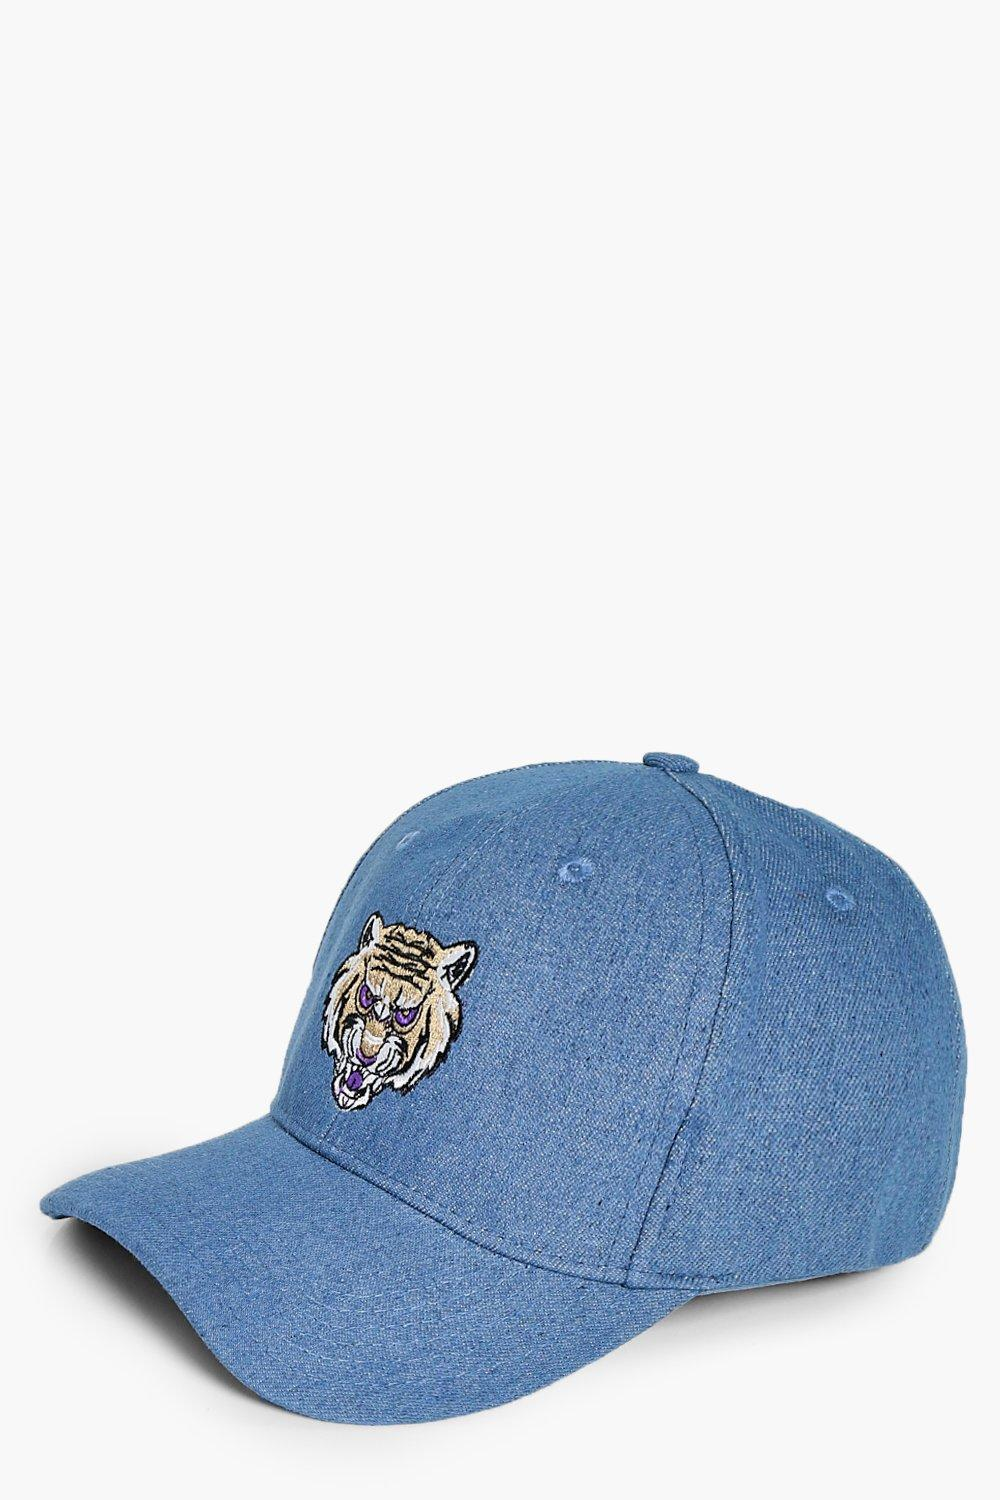 Embroidered Tiger Denim Cap - blue - Willow Embroi